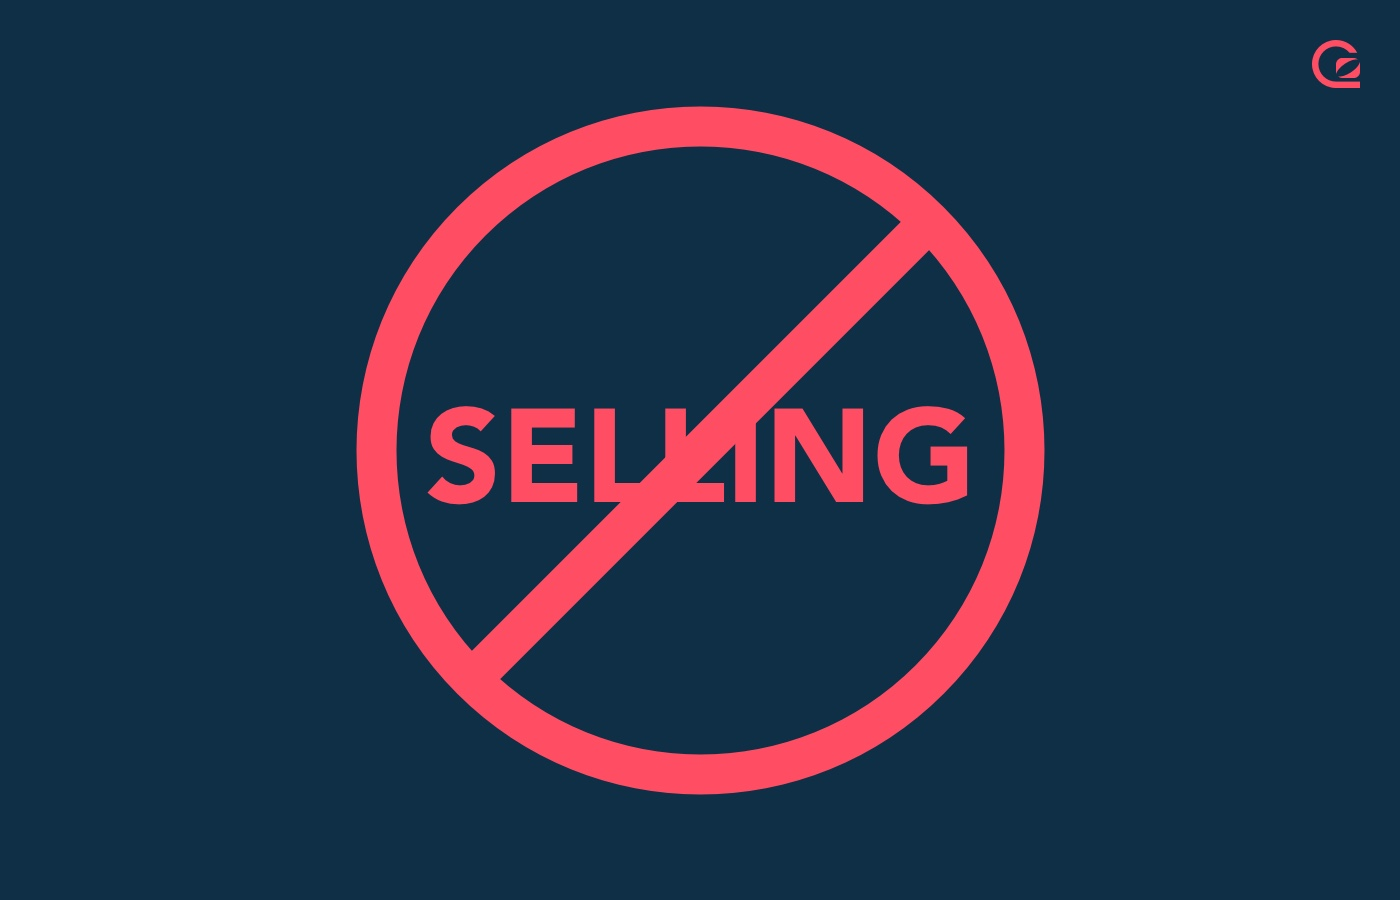 Sales techniques - Stop selling today illustration